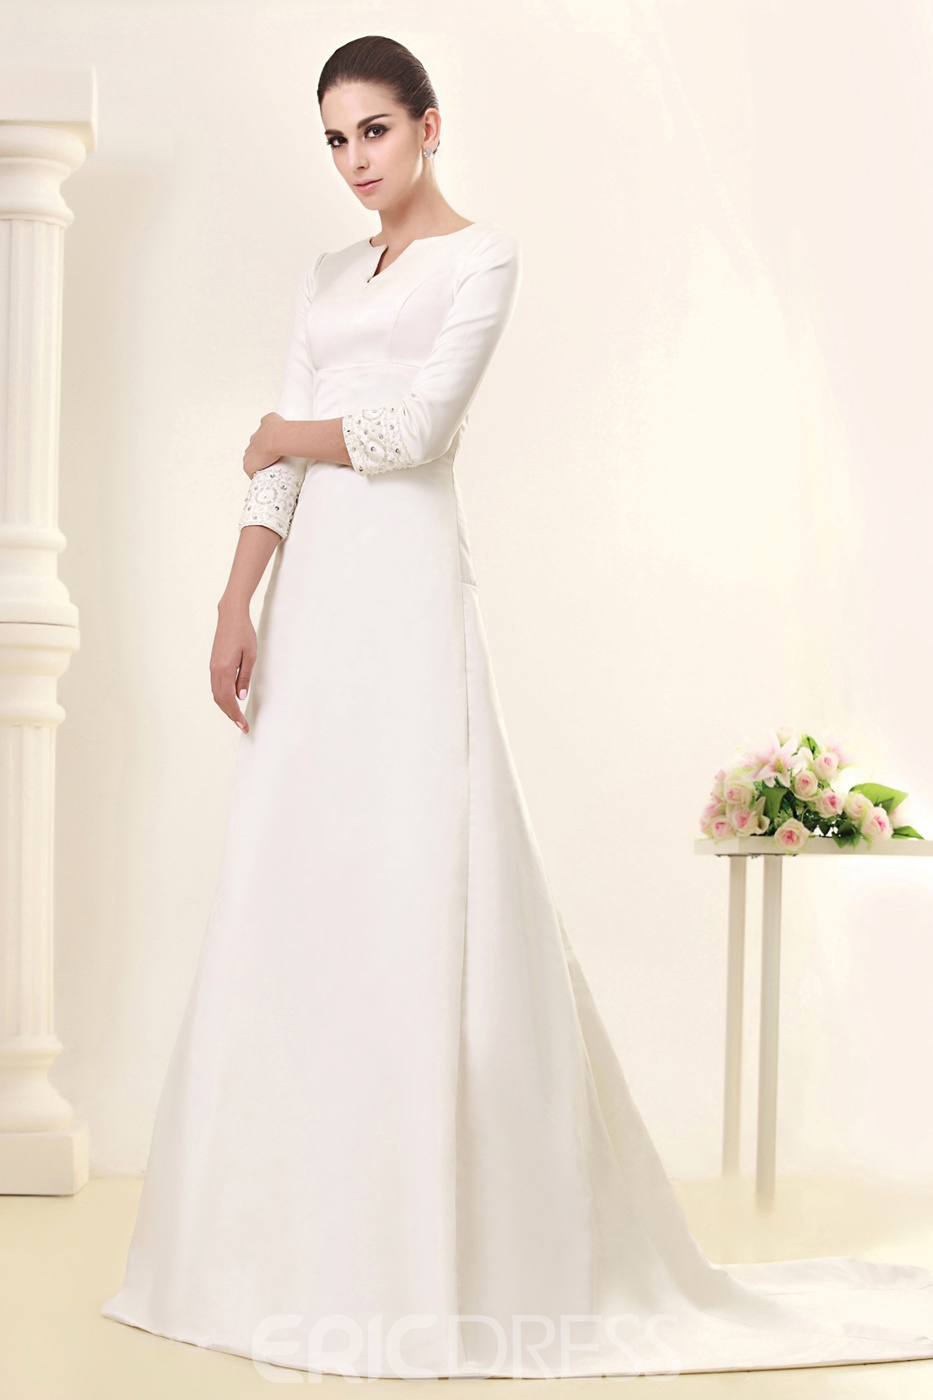 Glorious 3/4-Length Sleeve Bateau A-line Court Wedding Dress